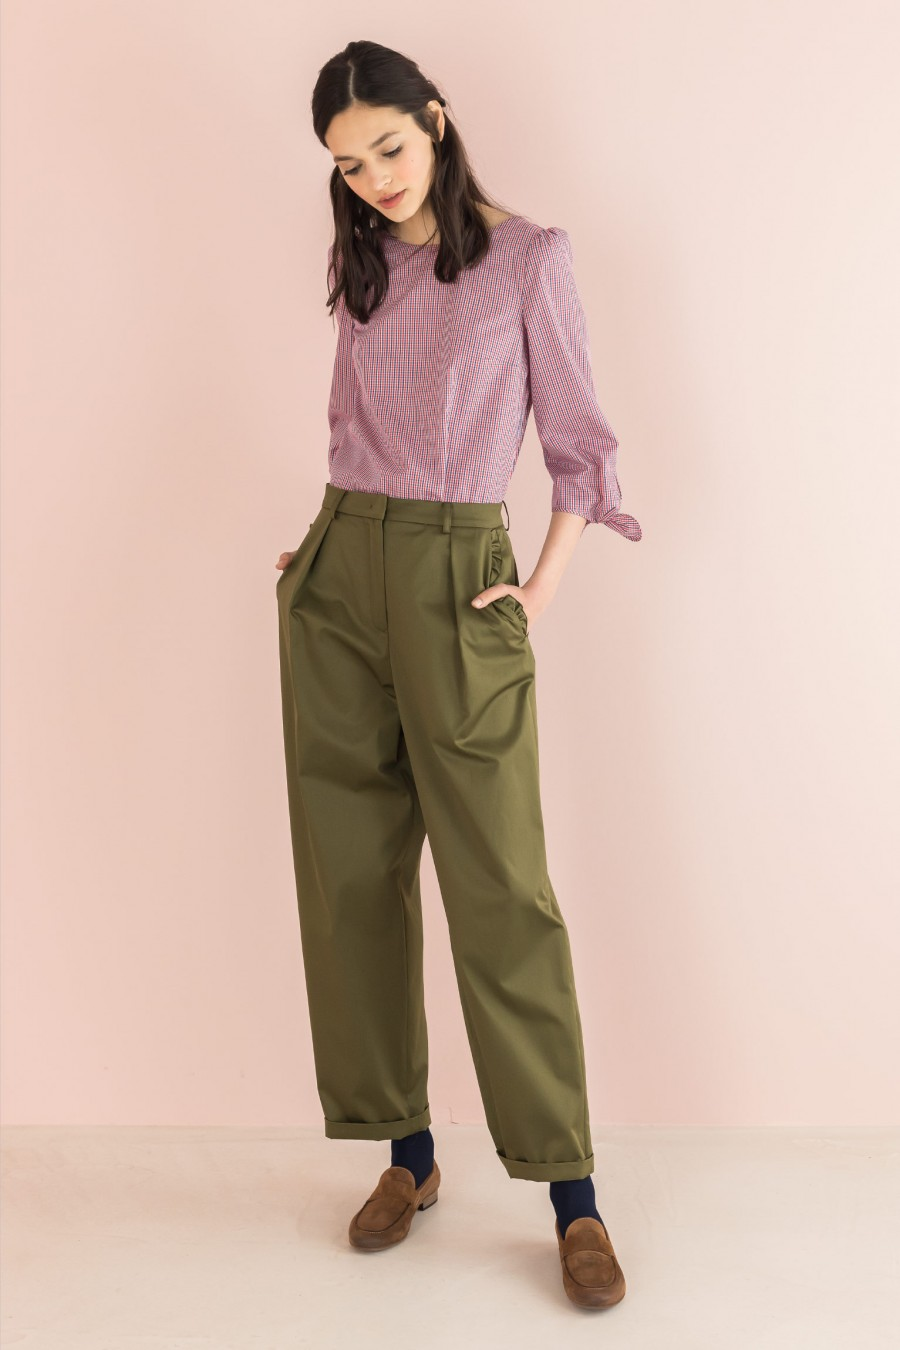 egg-shaped trousers with ruffles